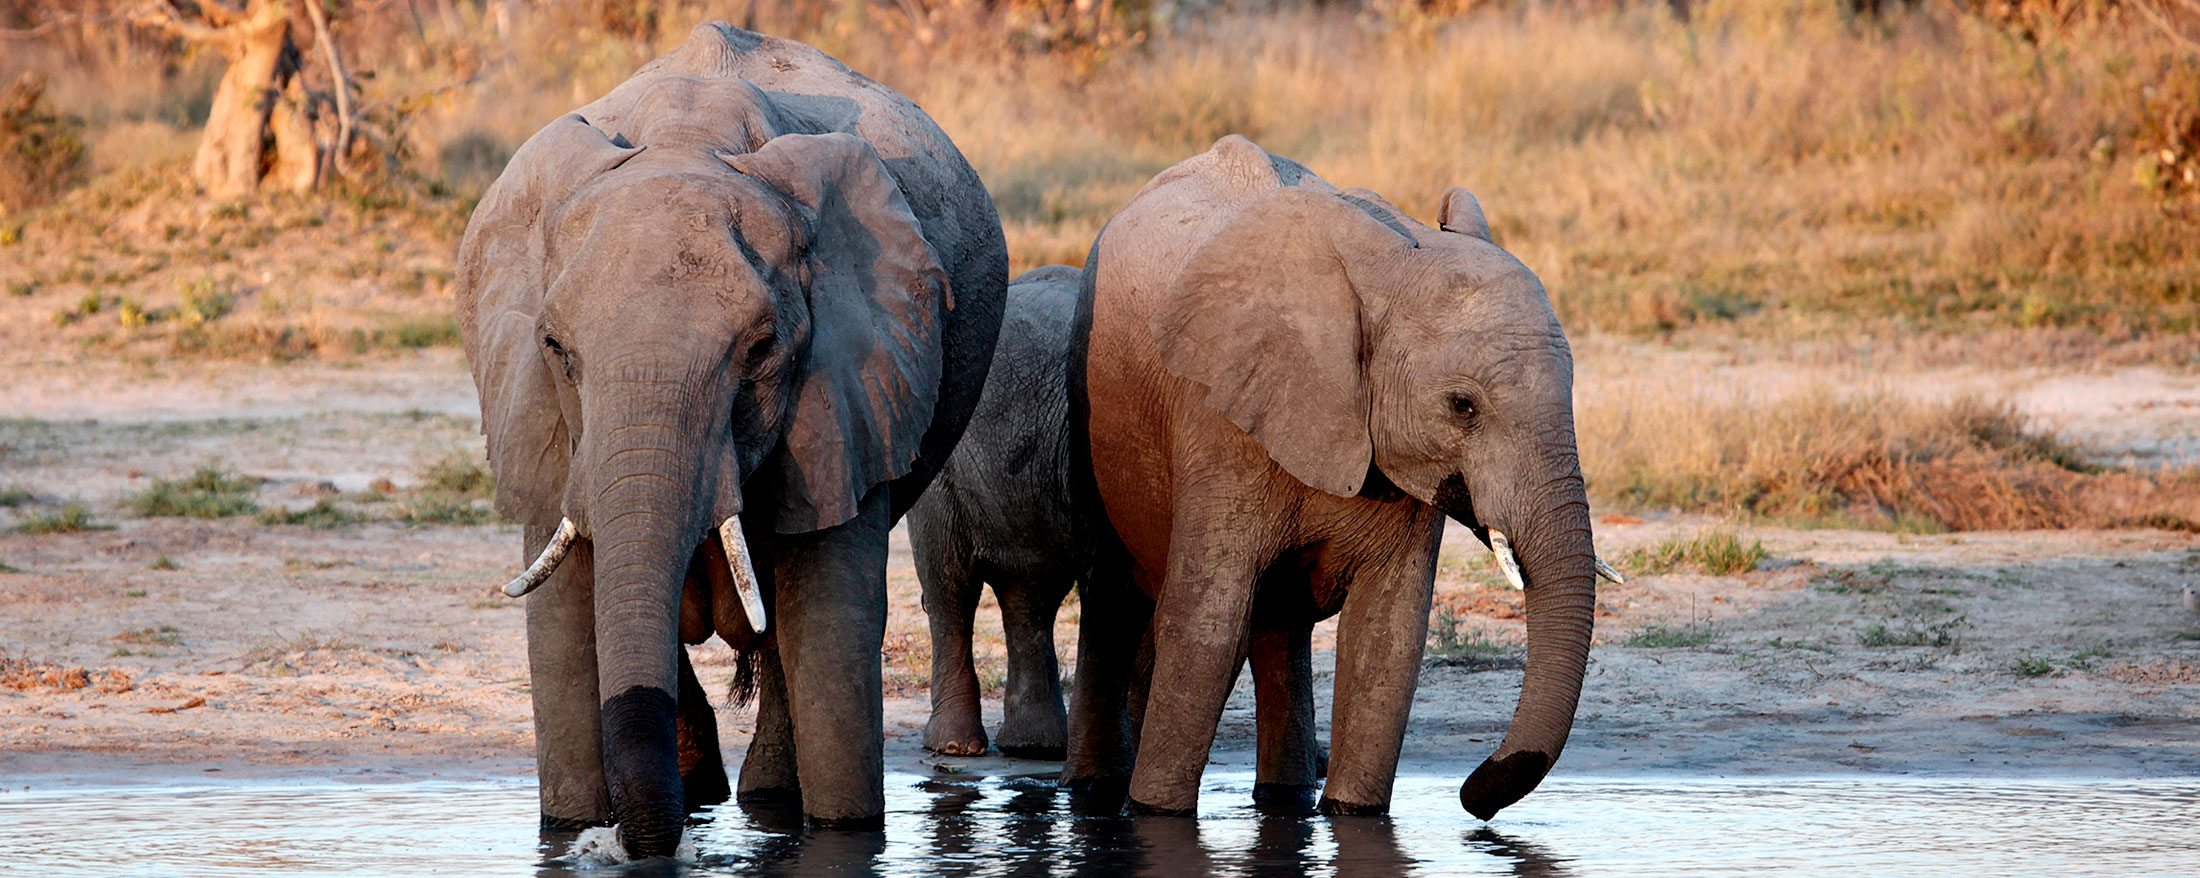 Chobe safari | The Savute Channel or 'Stolen River' floods and dries up on its own mysterious schedule.